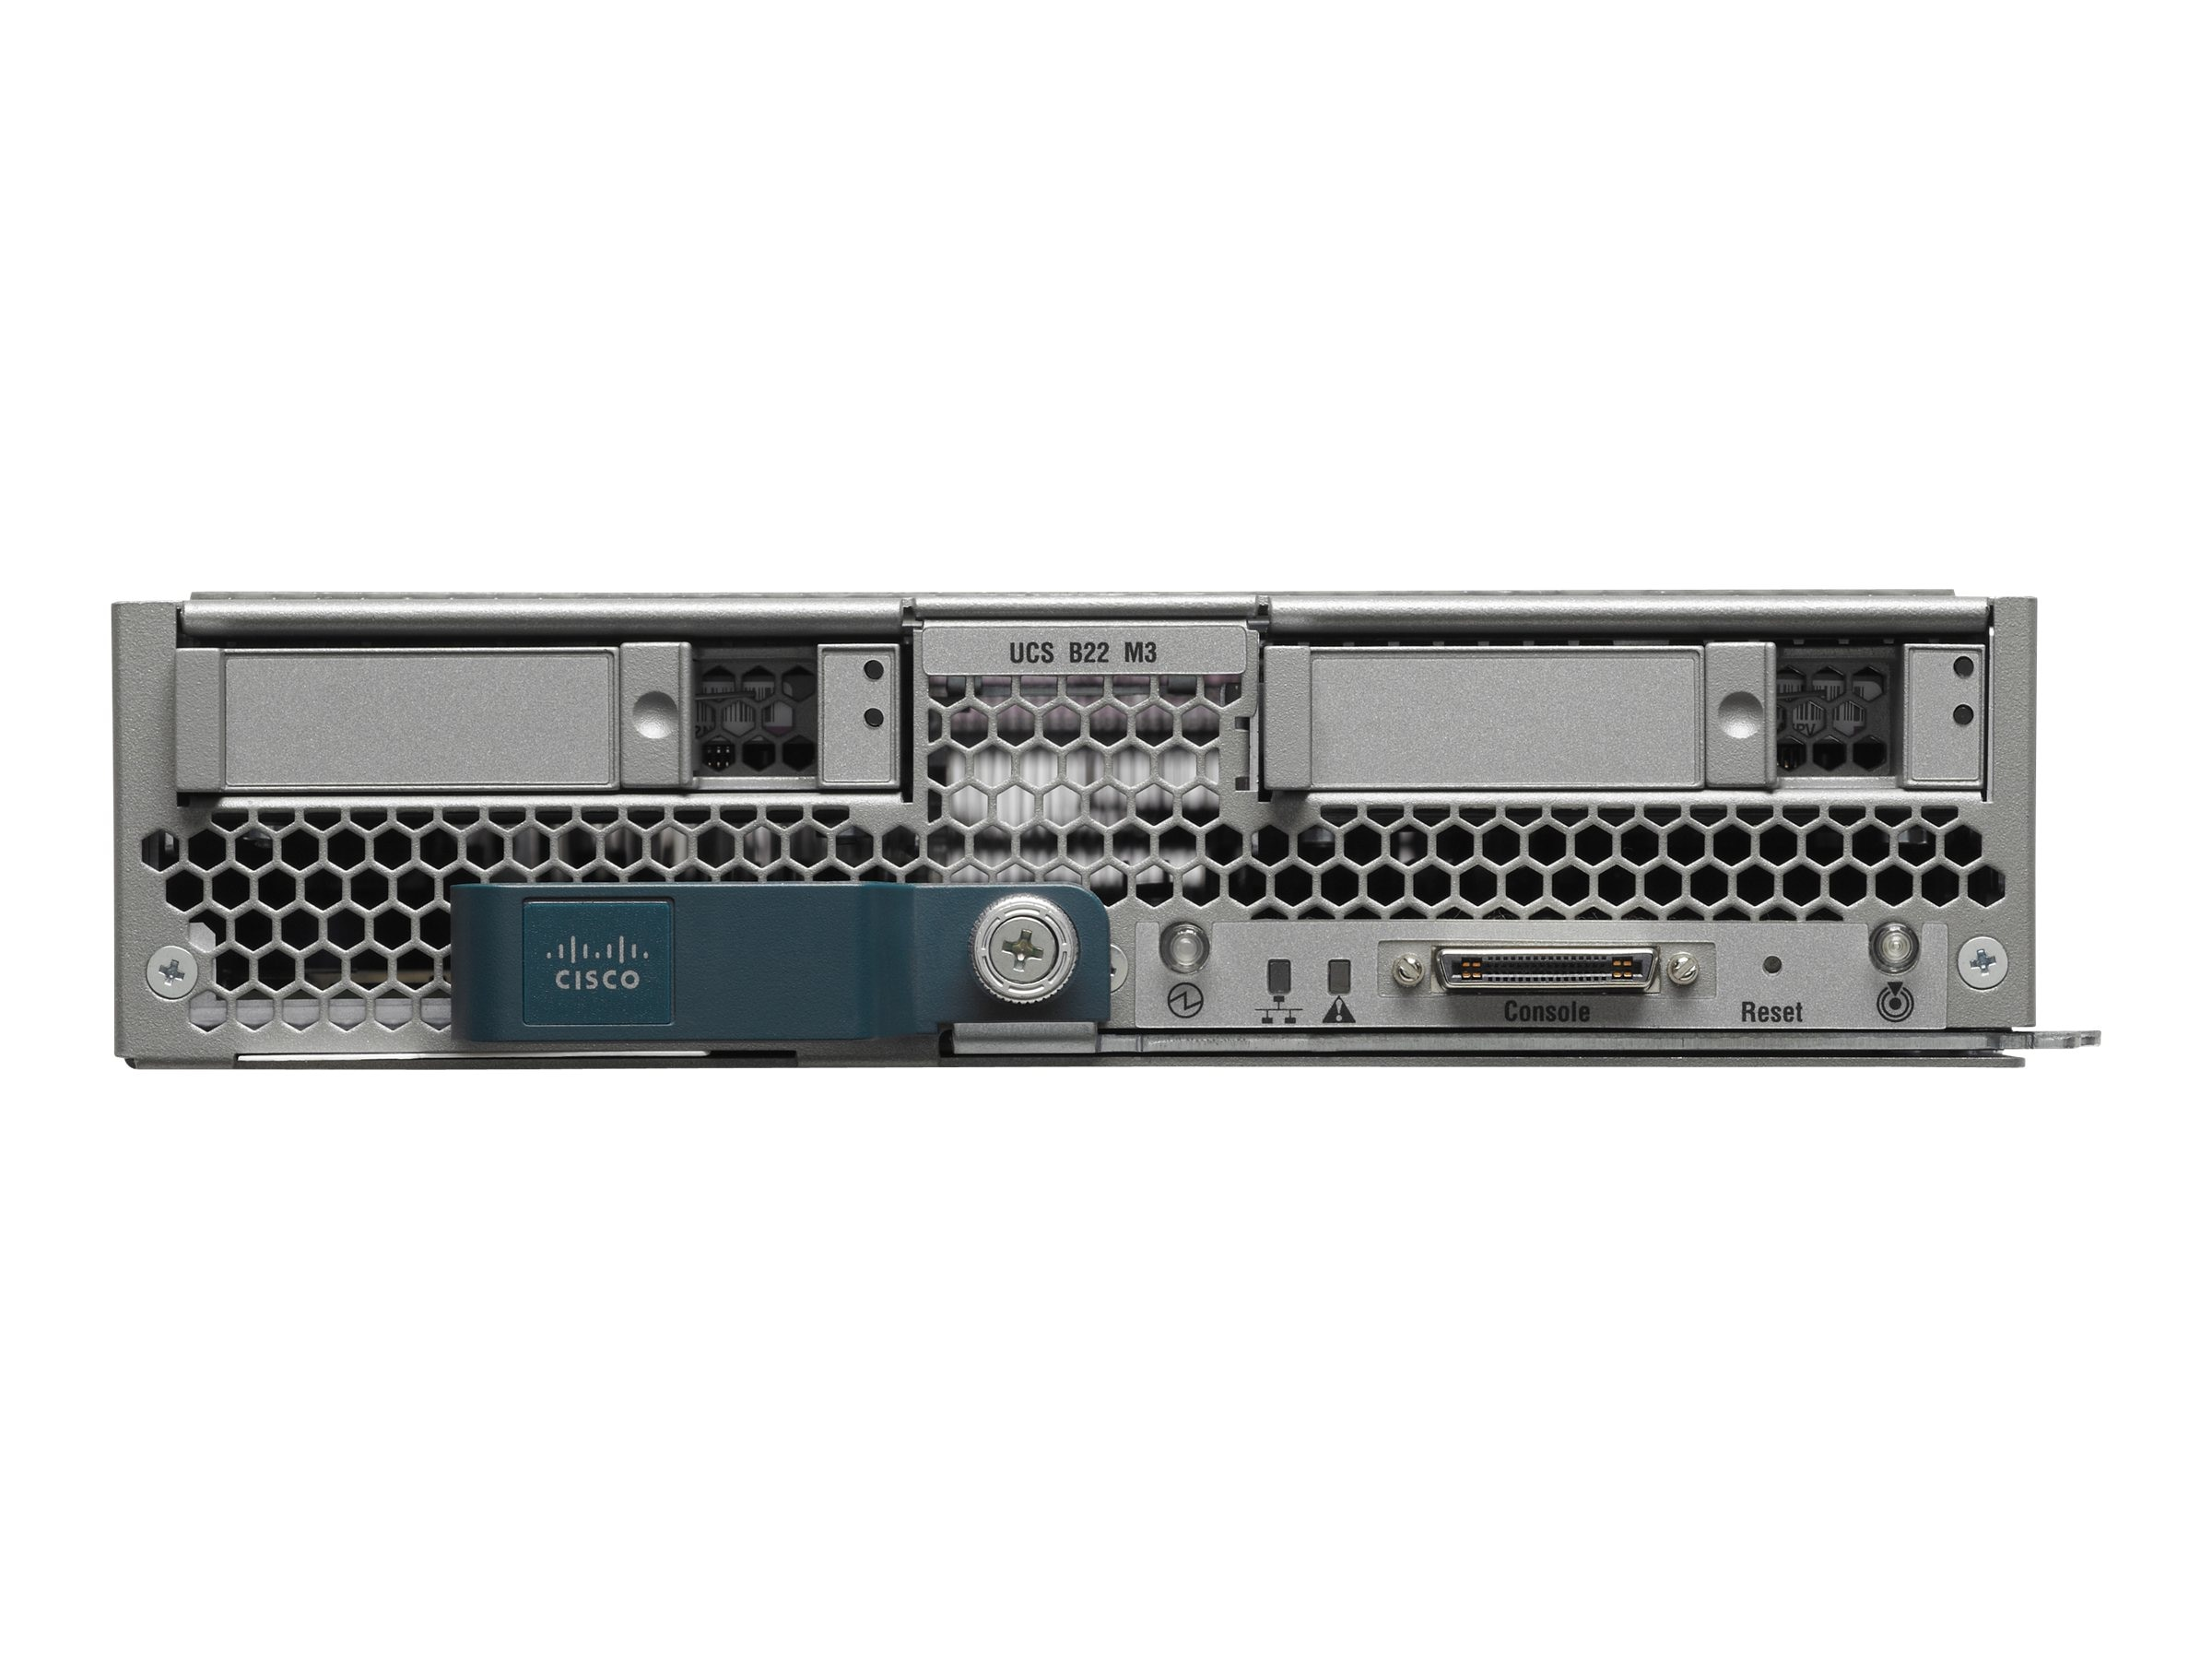 Cisco UCS B200 M3 Entry SmartPlay Expansion Pack (2x) Xeon E5-2609 v2 2.5GHz 64GB 2x2.5 Bays VIC1240, UCS-EZ7-B200-E, 16470437, Servers - Blade